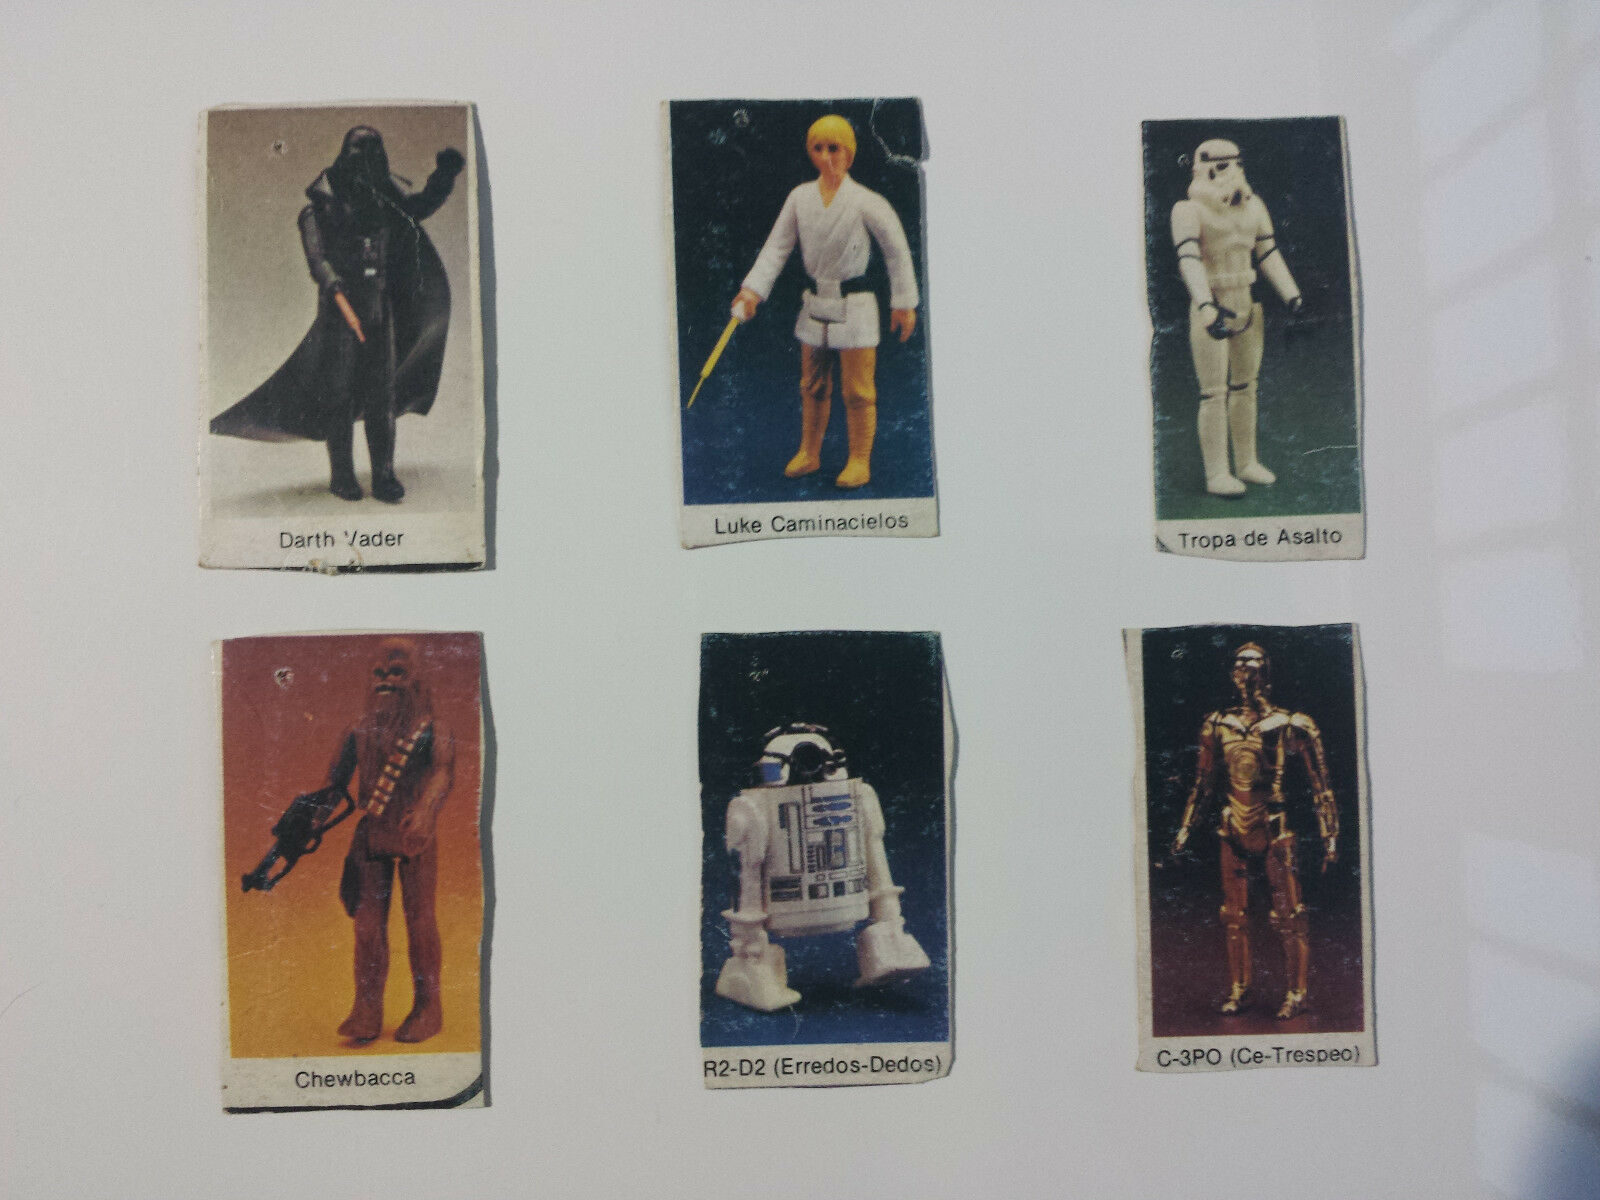 Star Wars - Vintage Cuts of Spanish Adgreenisement Luke Caminacielos Ce-Trespeo